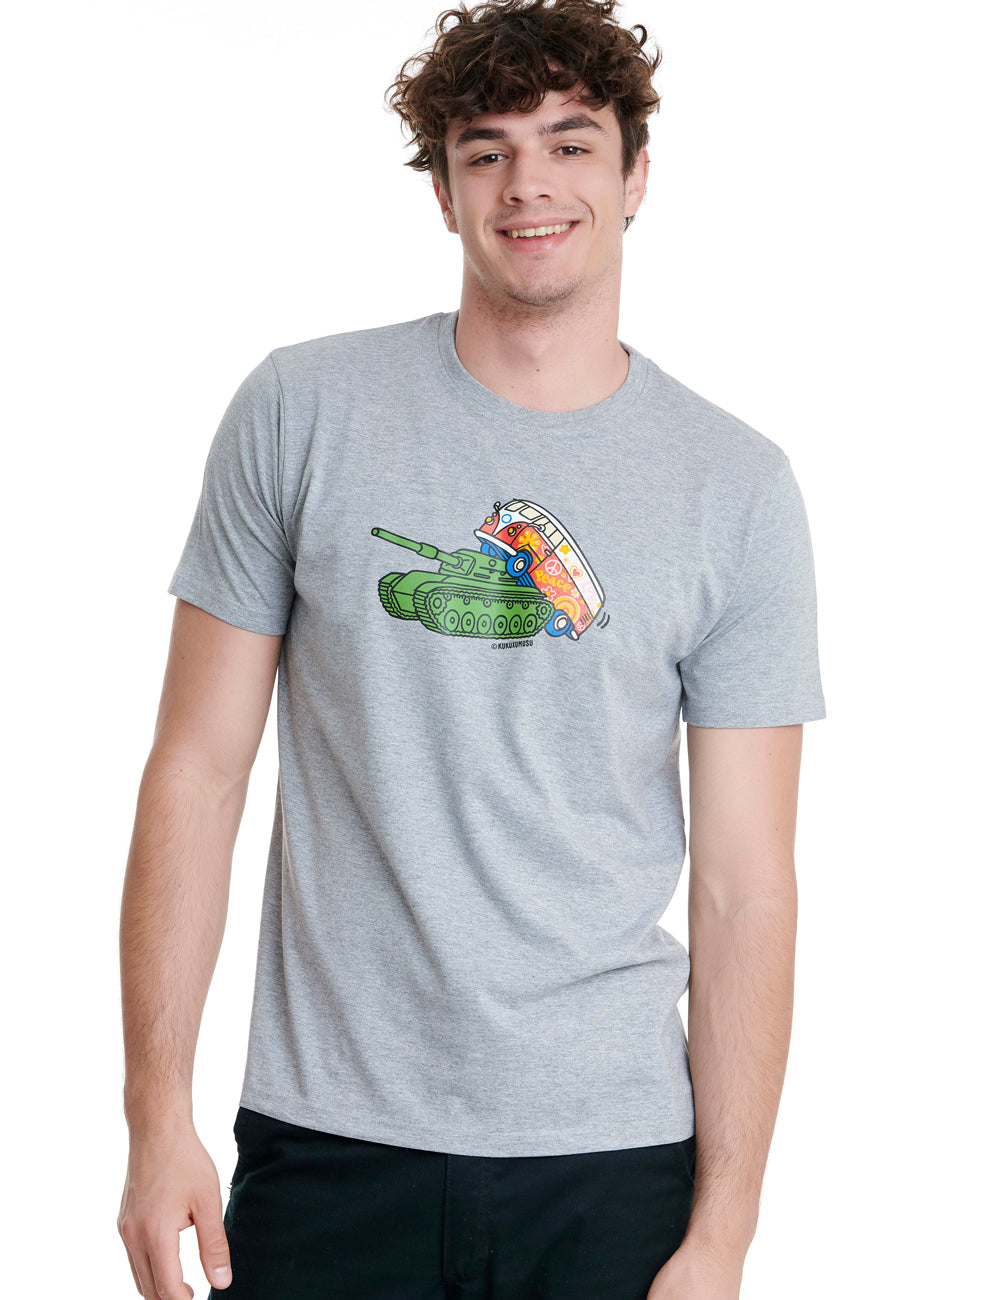 Van Bang Mens T-shirt